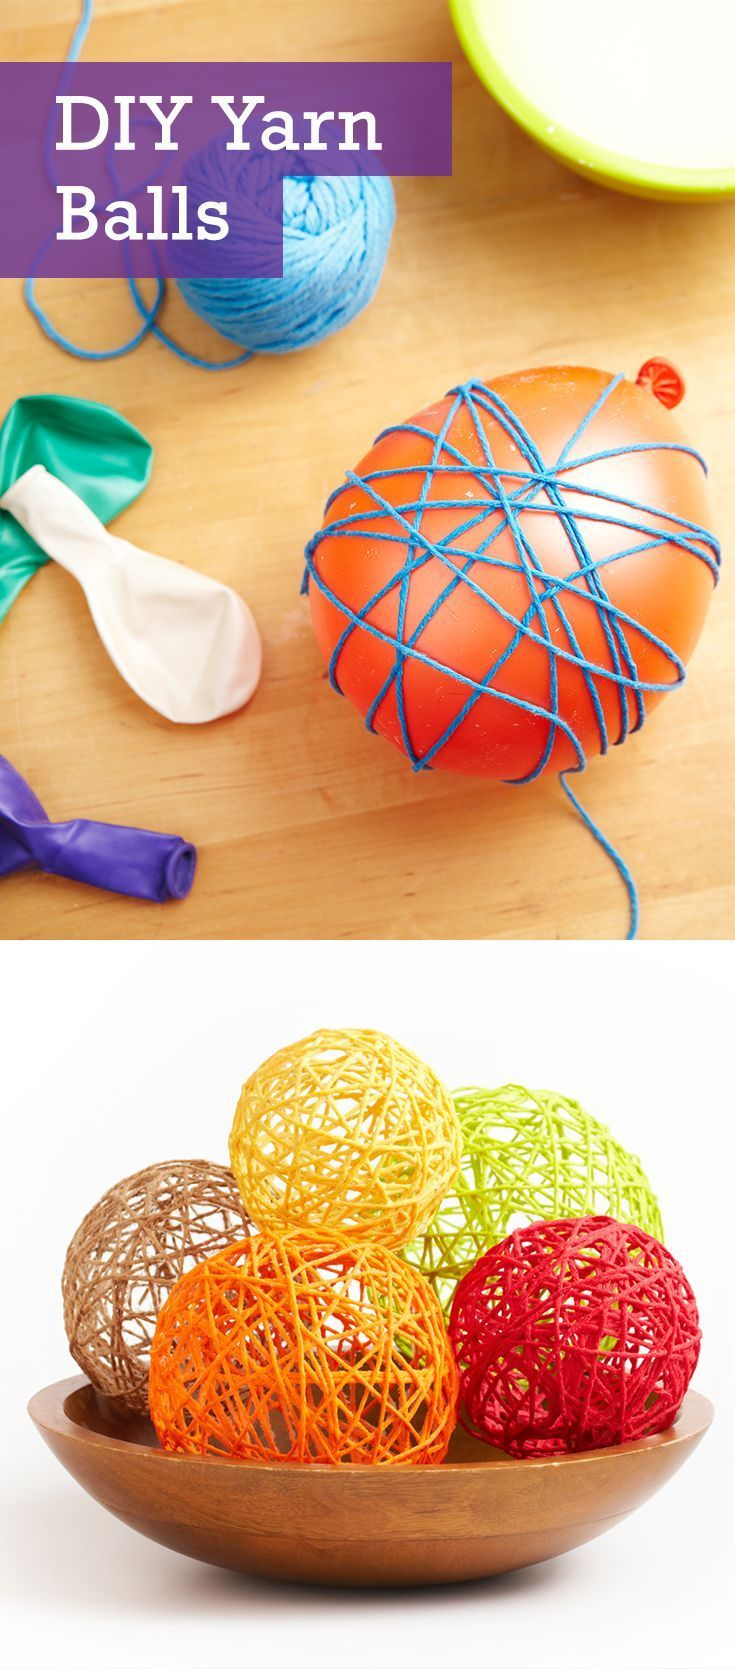 a festive touch to your home décor by crafting a few of these adorable DIY yarn balls. It's a fun yarn craft that everyone (even kids) can get involved with and is perfect for using up old or leftover yarn.